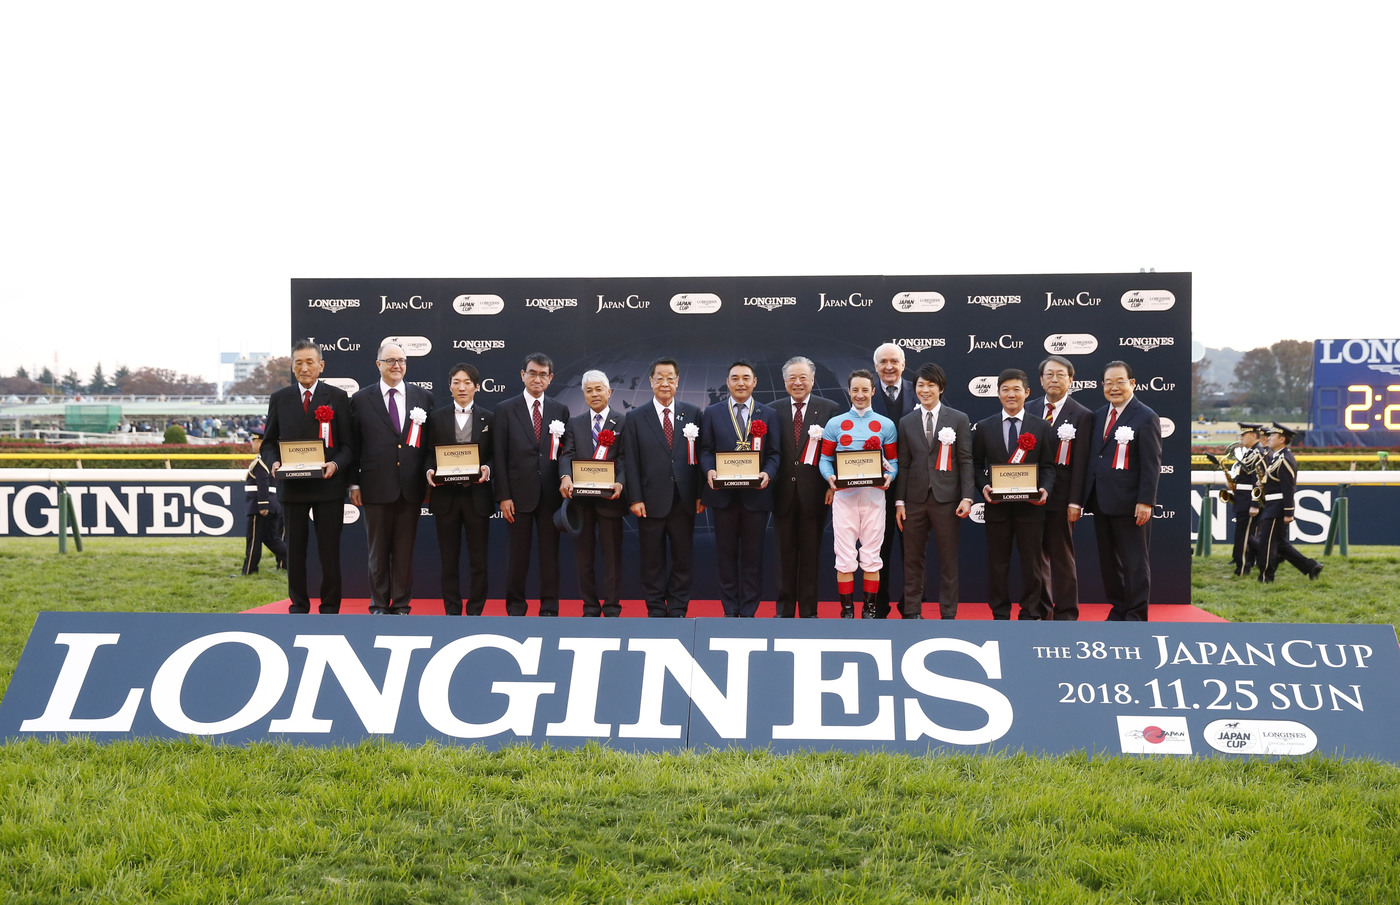 Longines Flat Racing Event: Christophe Lemaire riding Almond Eye galloped to victory in record time at the 38th edition of the Japan Cup in association with Longines  1